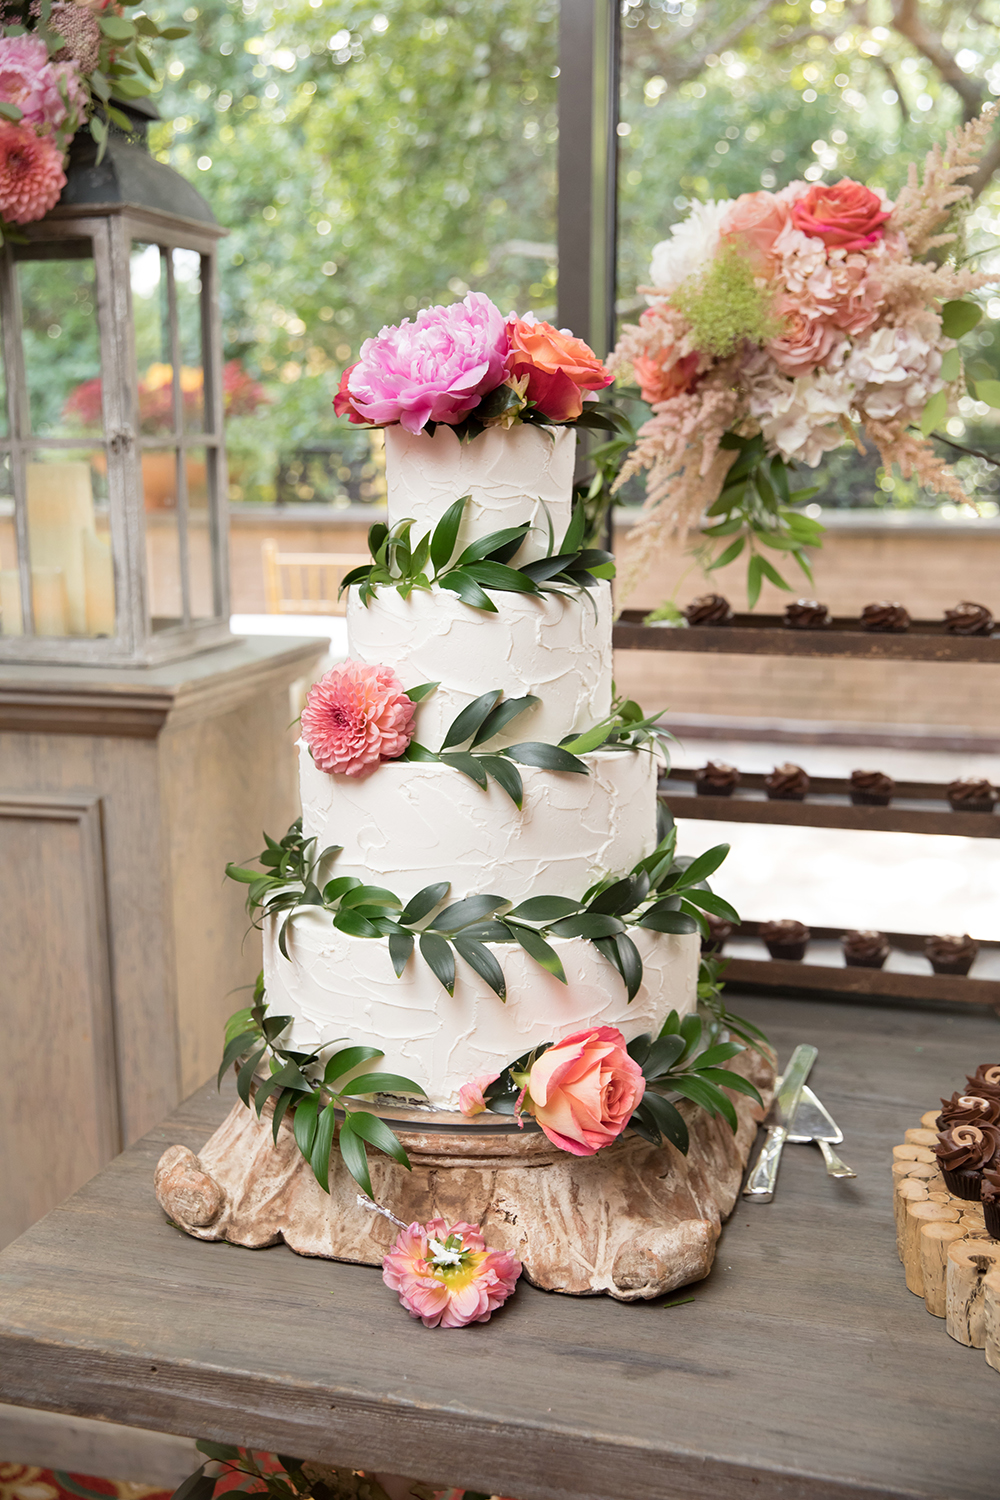 Houstonian Hotel, cake, susies cake, confections, susie, susie's, flower, pink, wood, tower, rustic